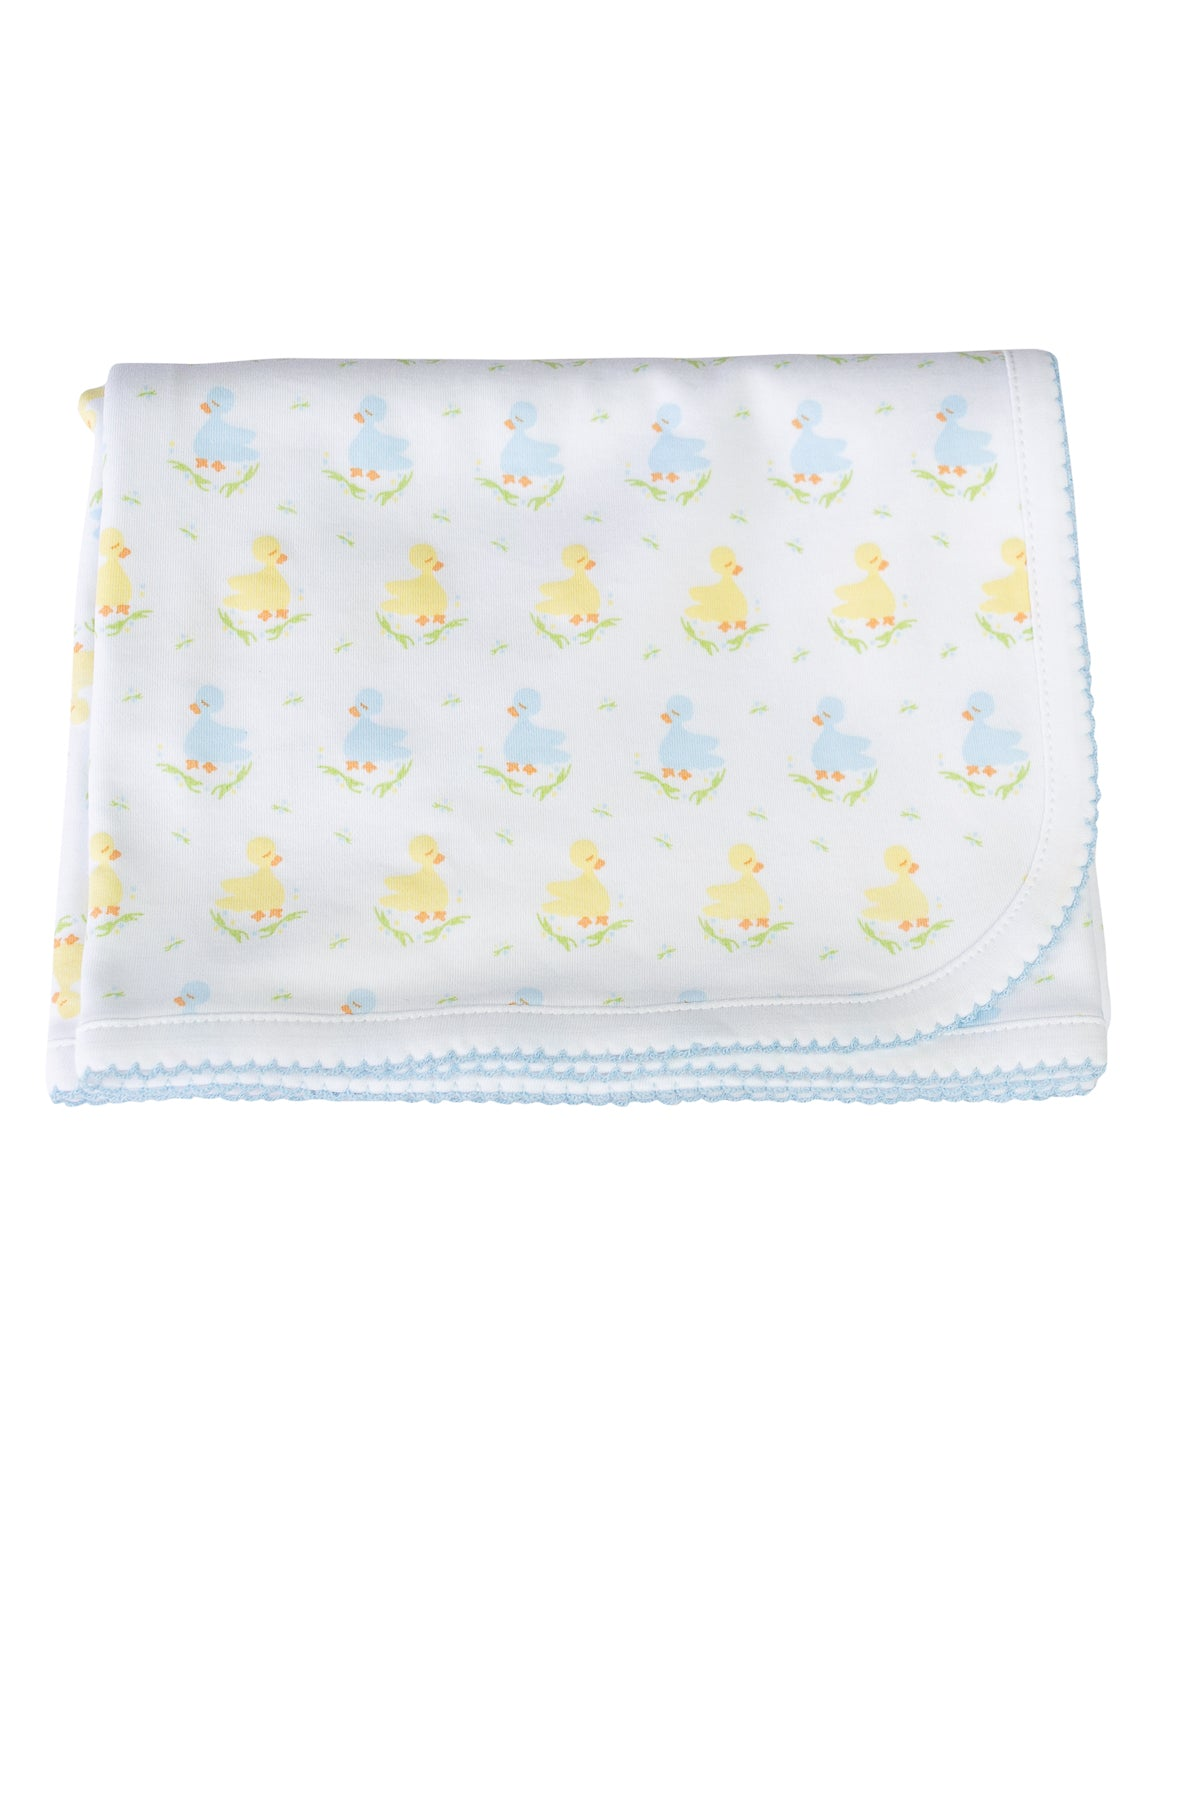 Blue Ducks Receiving Blanket